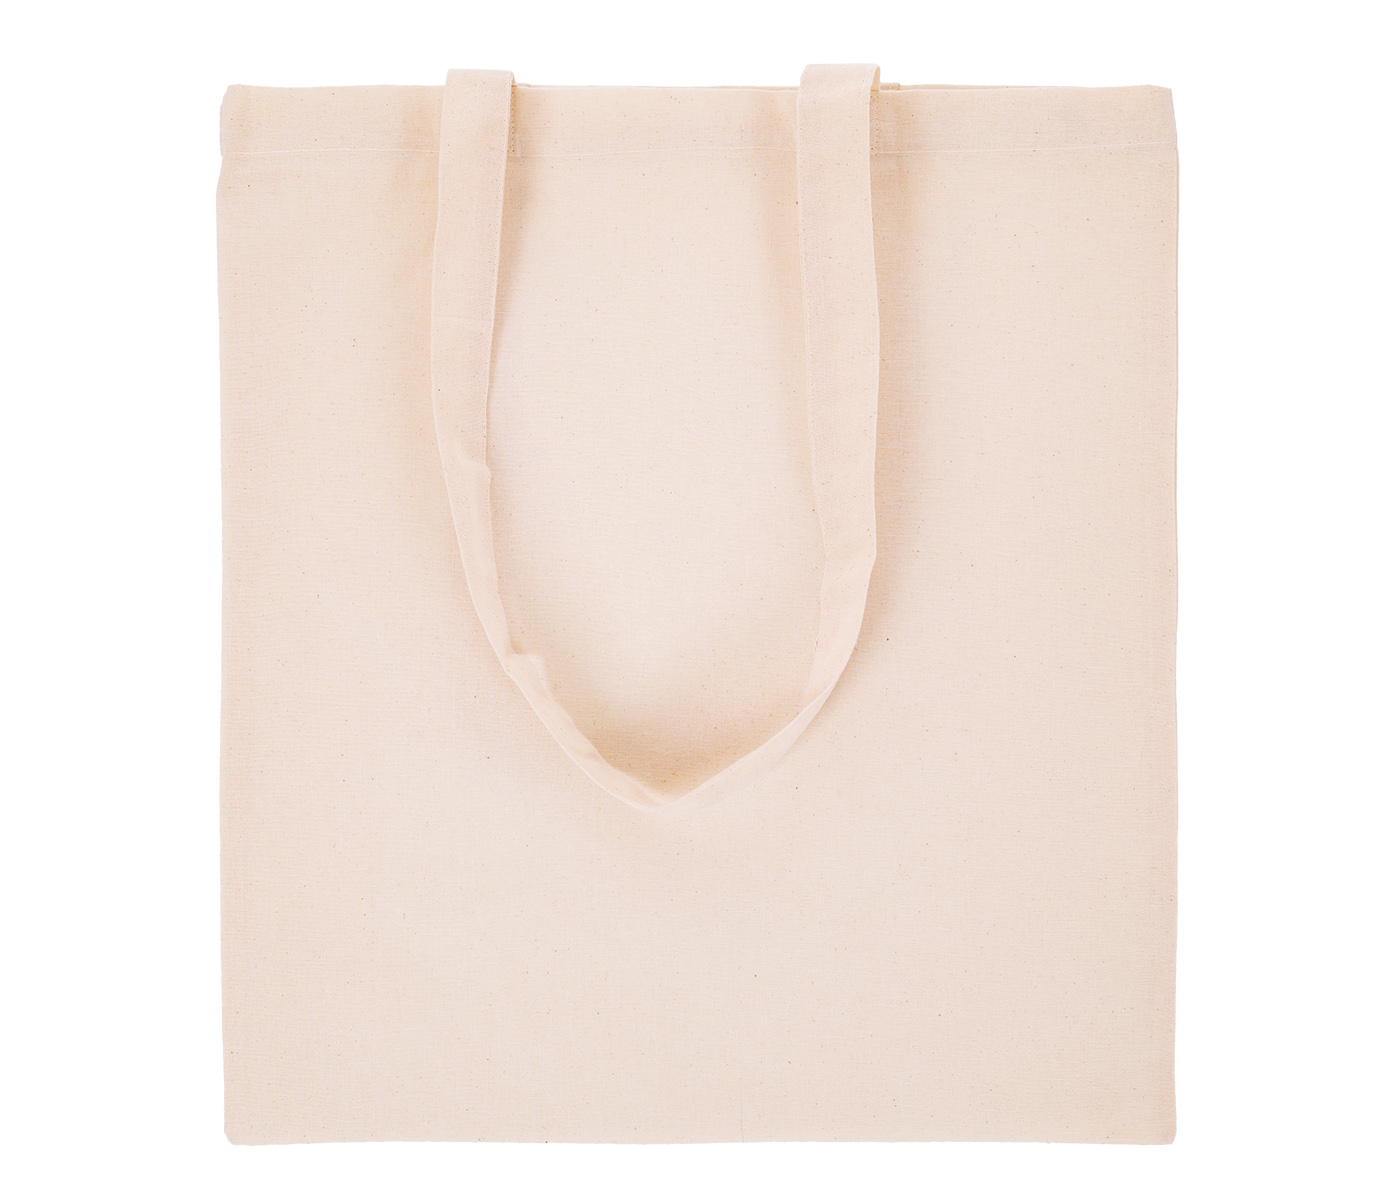 Item PROMOTION! BAG COTTON tote Bags beige 145g/m2